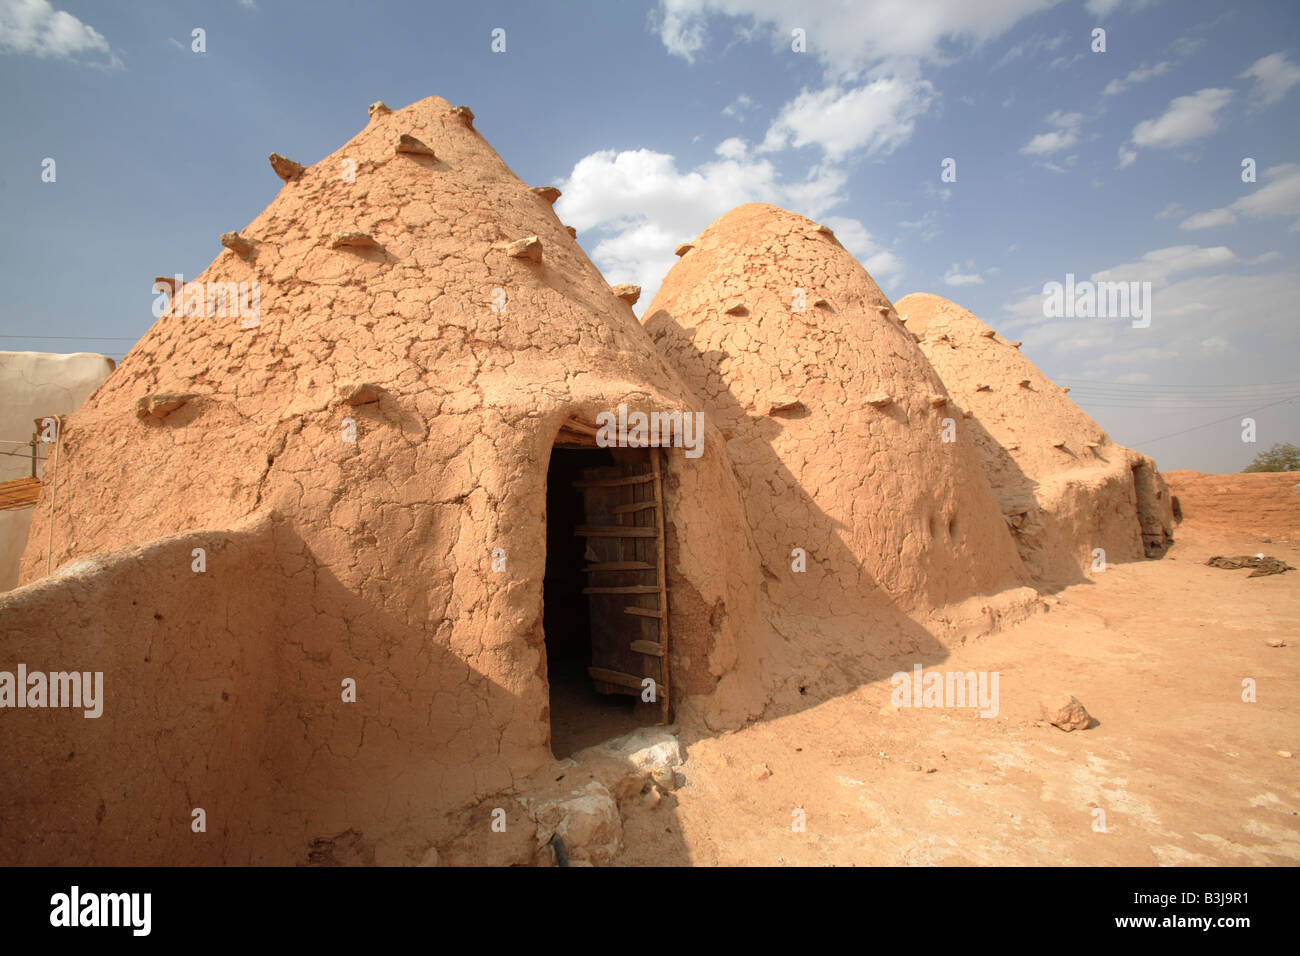 Traditional Beehive Houses In Sarouj Village Hama Syria